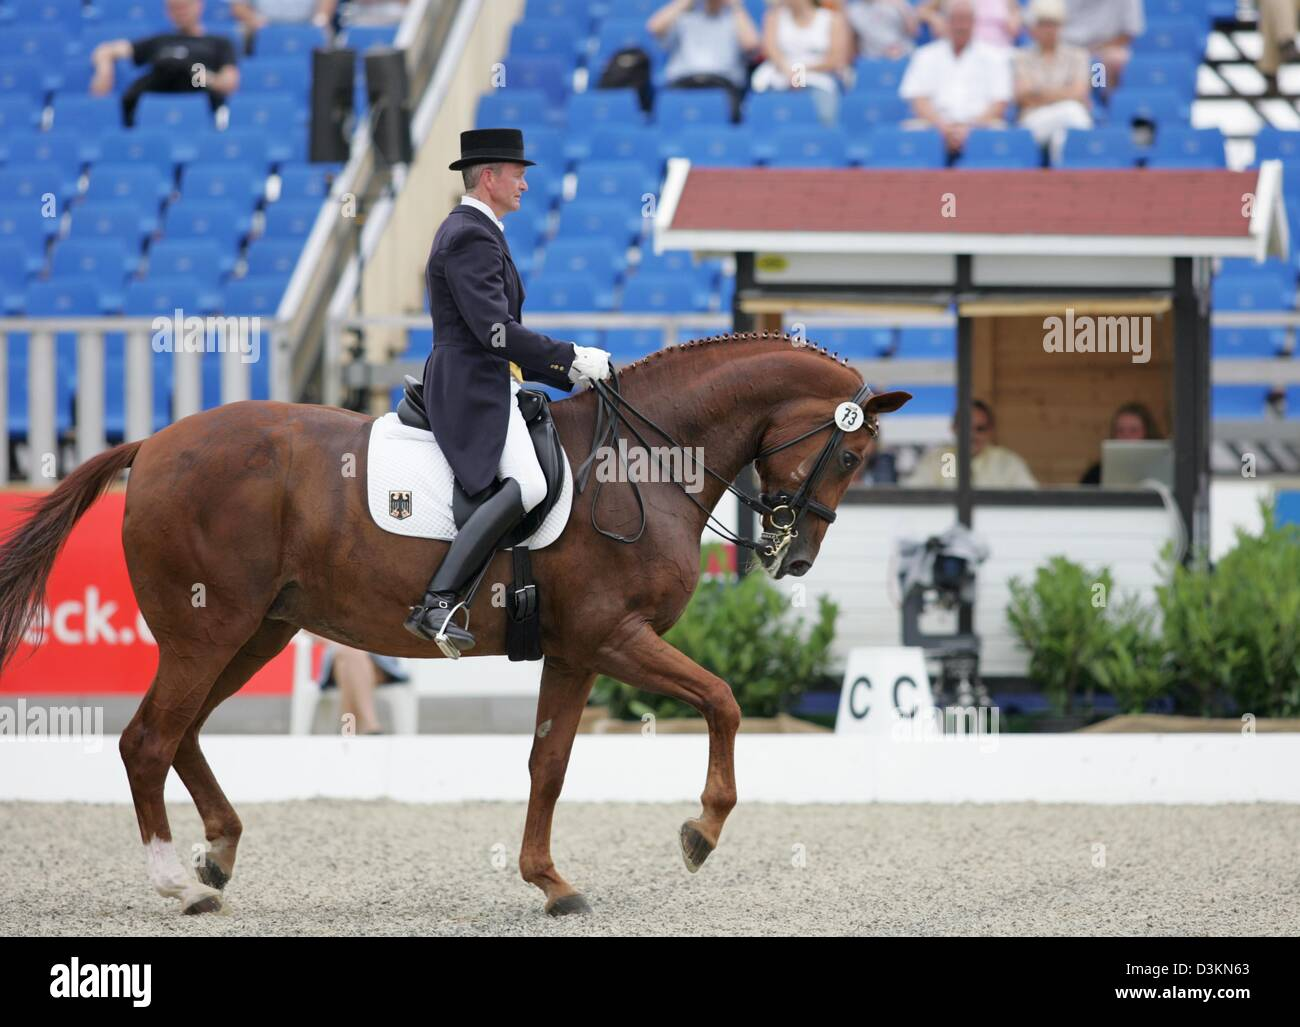 (dpa) - The picture shows German equestrian Hubertus Schmidt on Wansuela Suerte prior to his test at the dressage - Stock Image